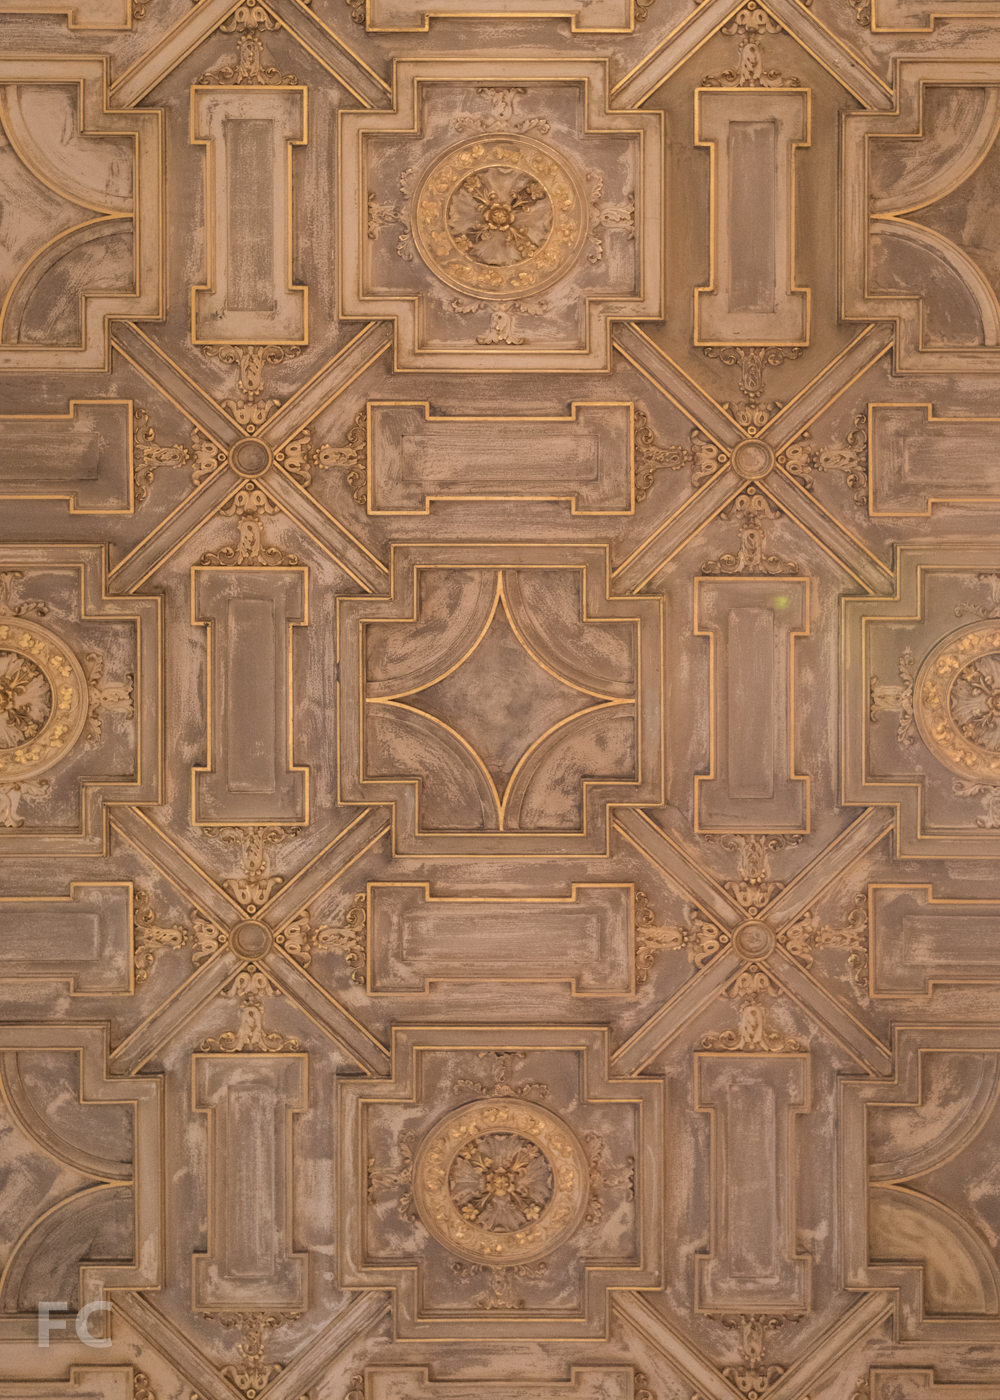 Detail of the Process Lab ceiling.